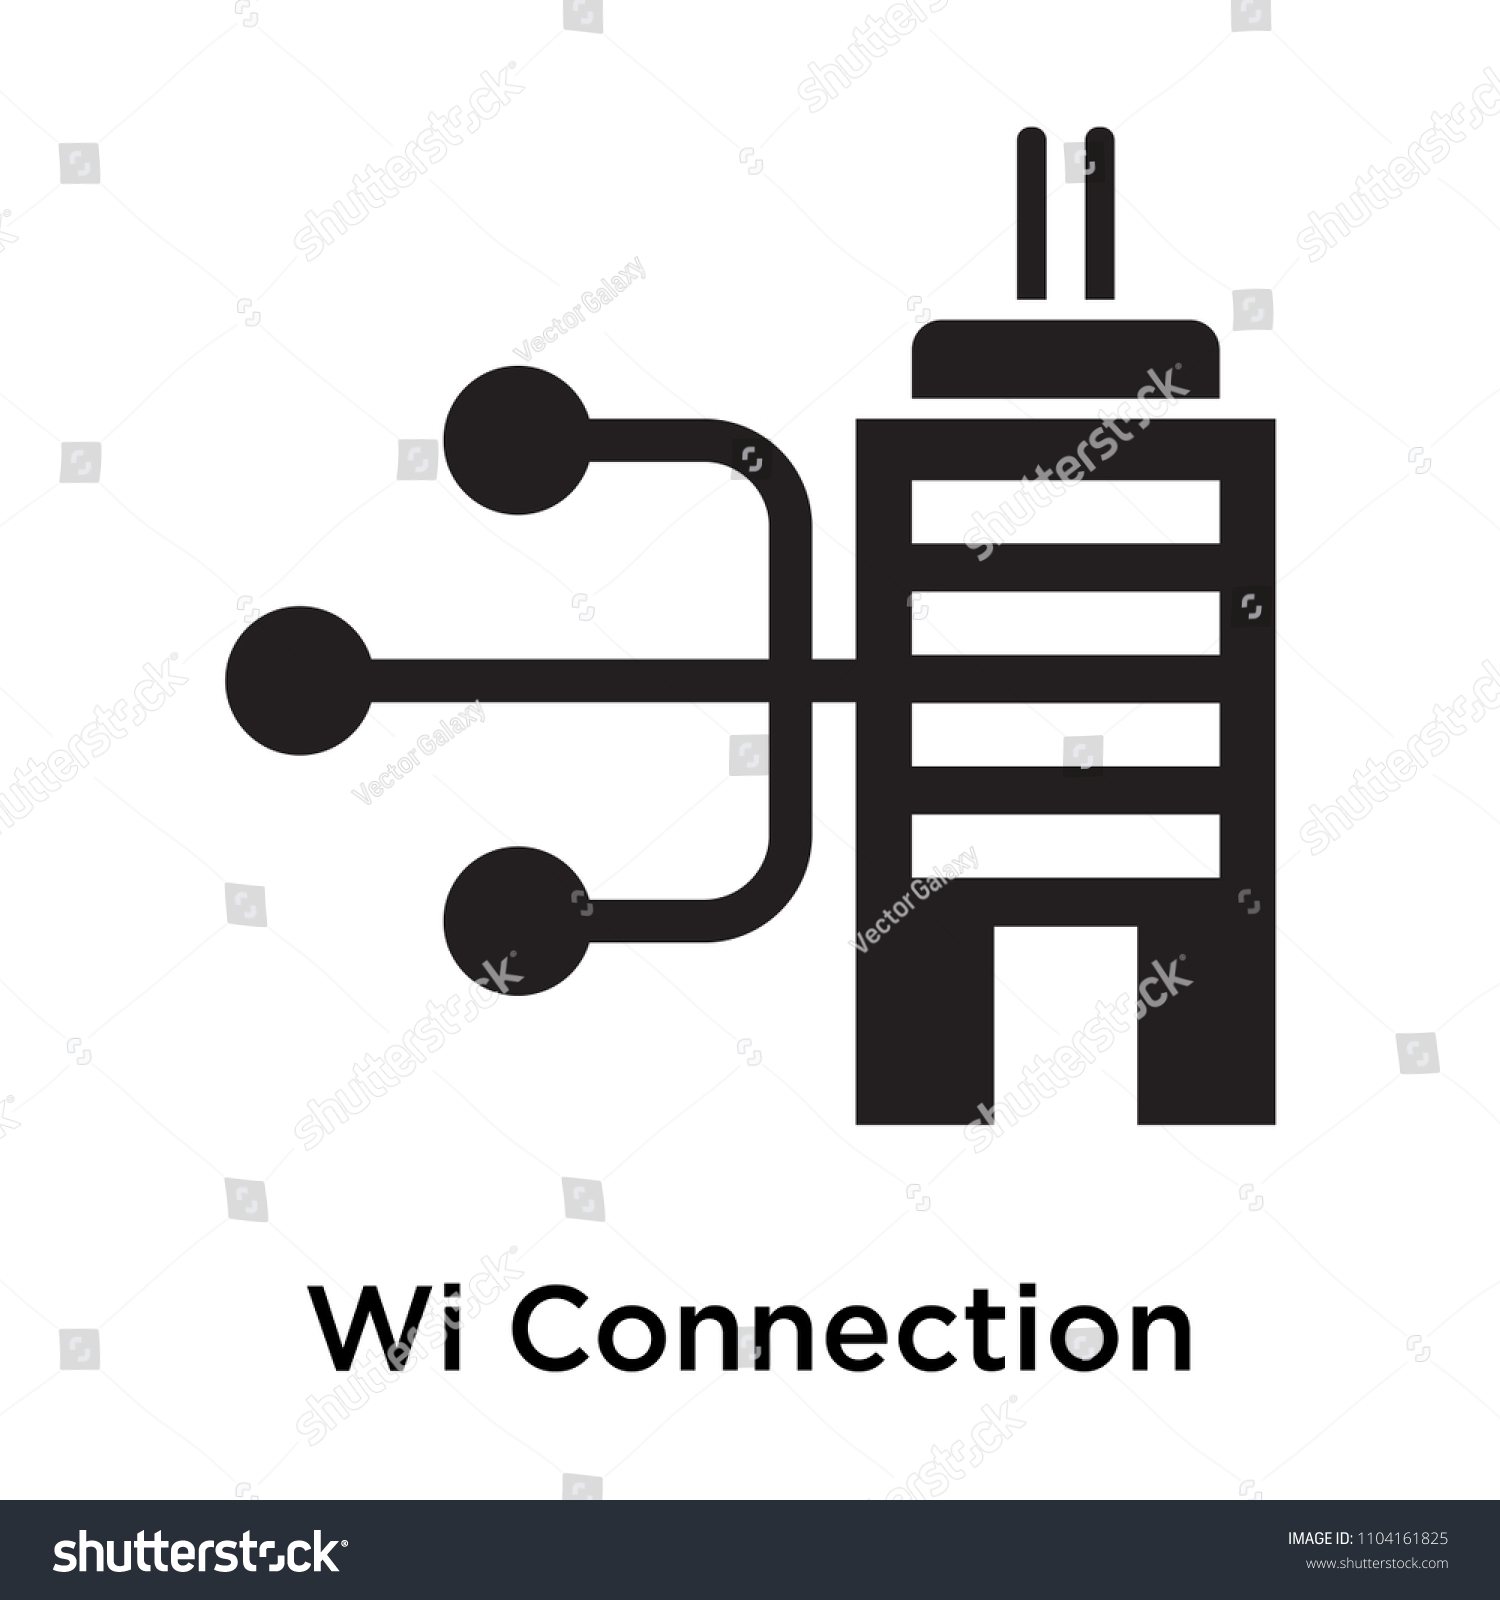 Wired Connection Silhouette Icon Vector Isolated Stock Vector ...